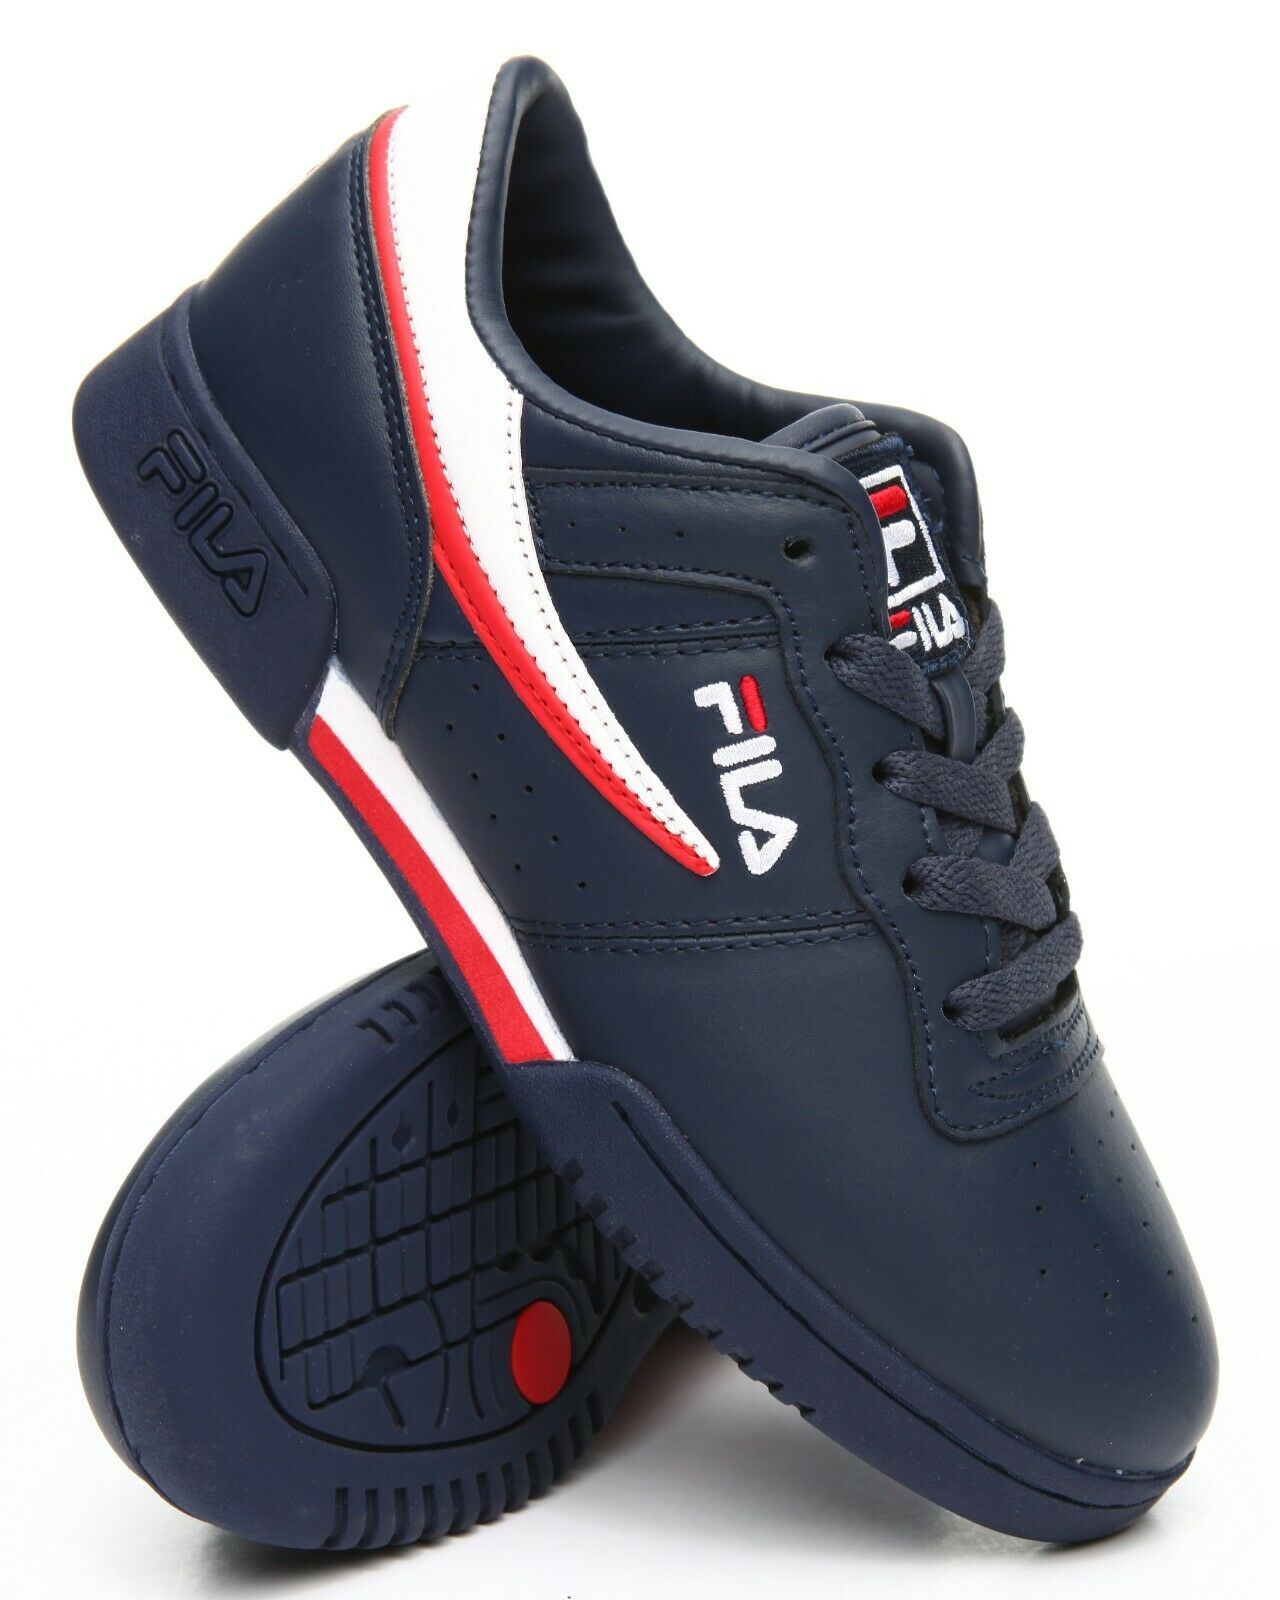 Fila Original Fitness Navy bluee White Red Mens Sneakers Tennis shoes Sizes